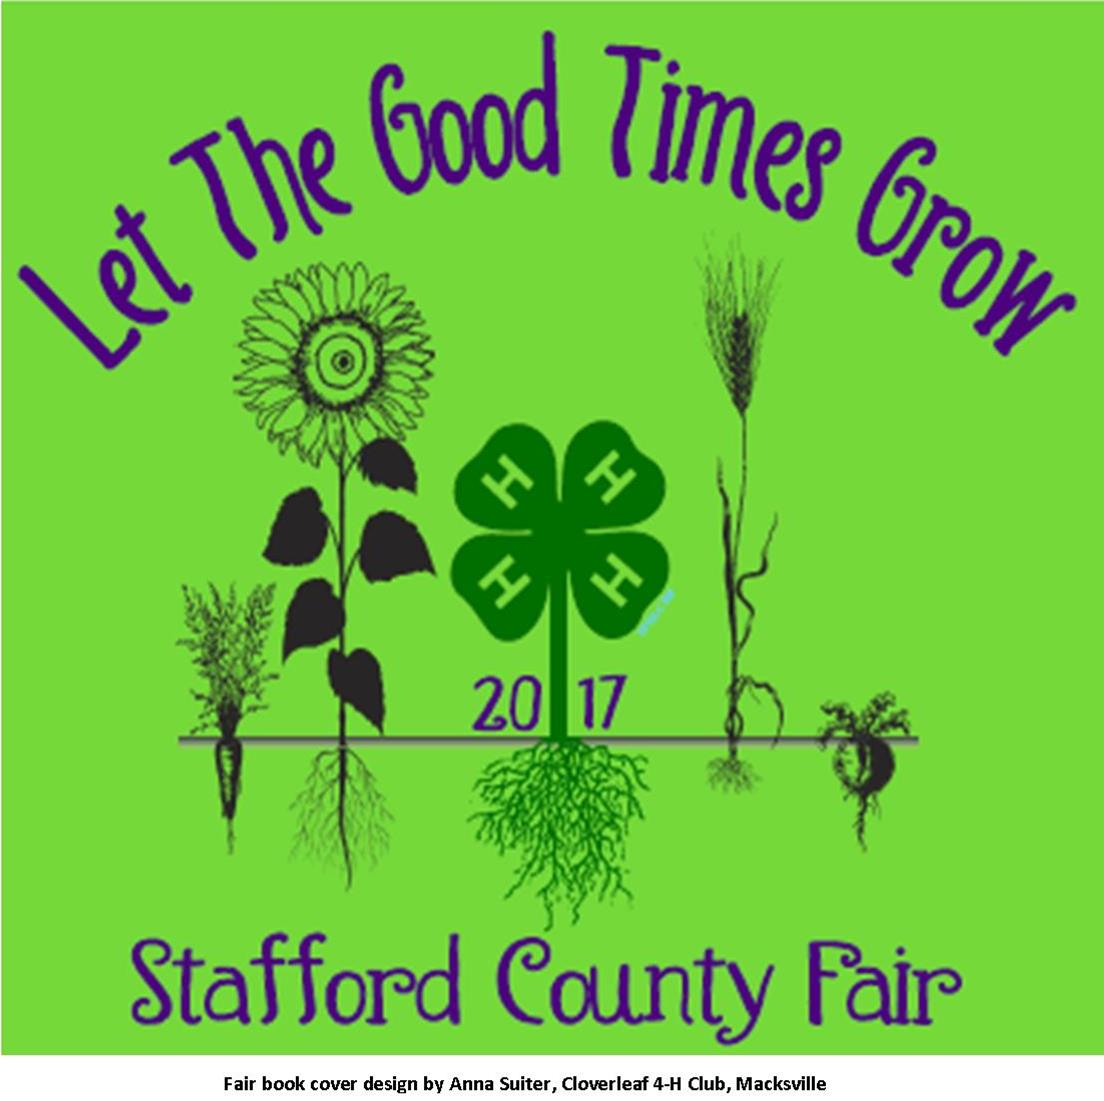 Kansas stafford county - The 2017 Stafford County Fair Dates Are July 12 15 2017 Check Out The Schedule Of Events Below We Look Forward To Seeing You At The Fair